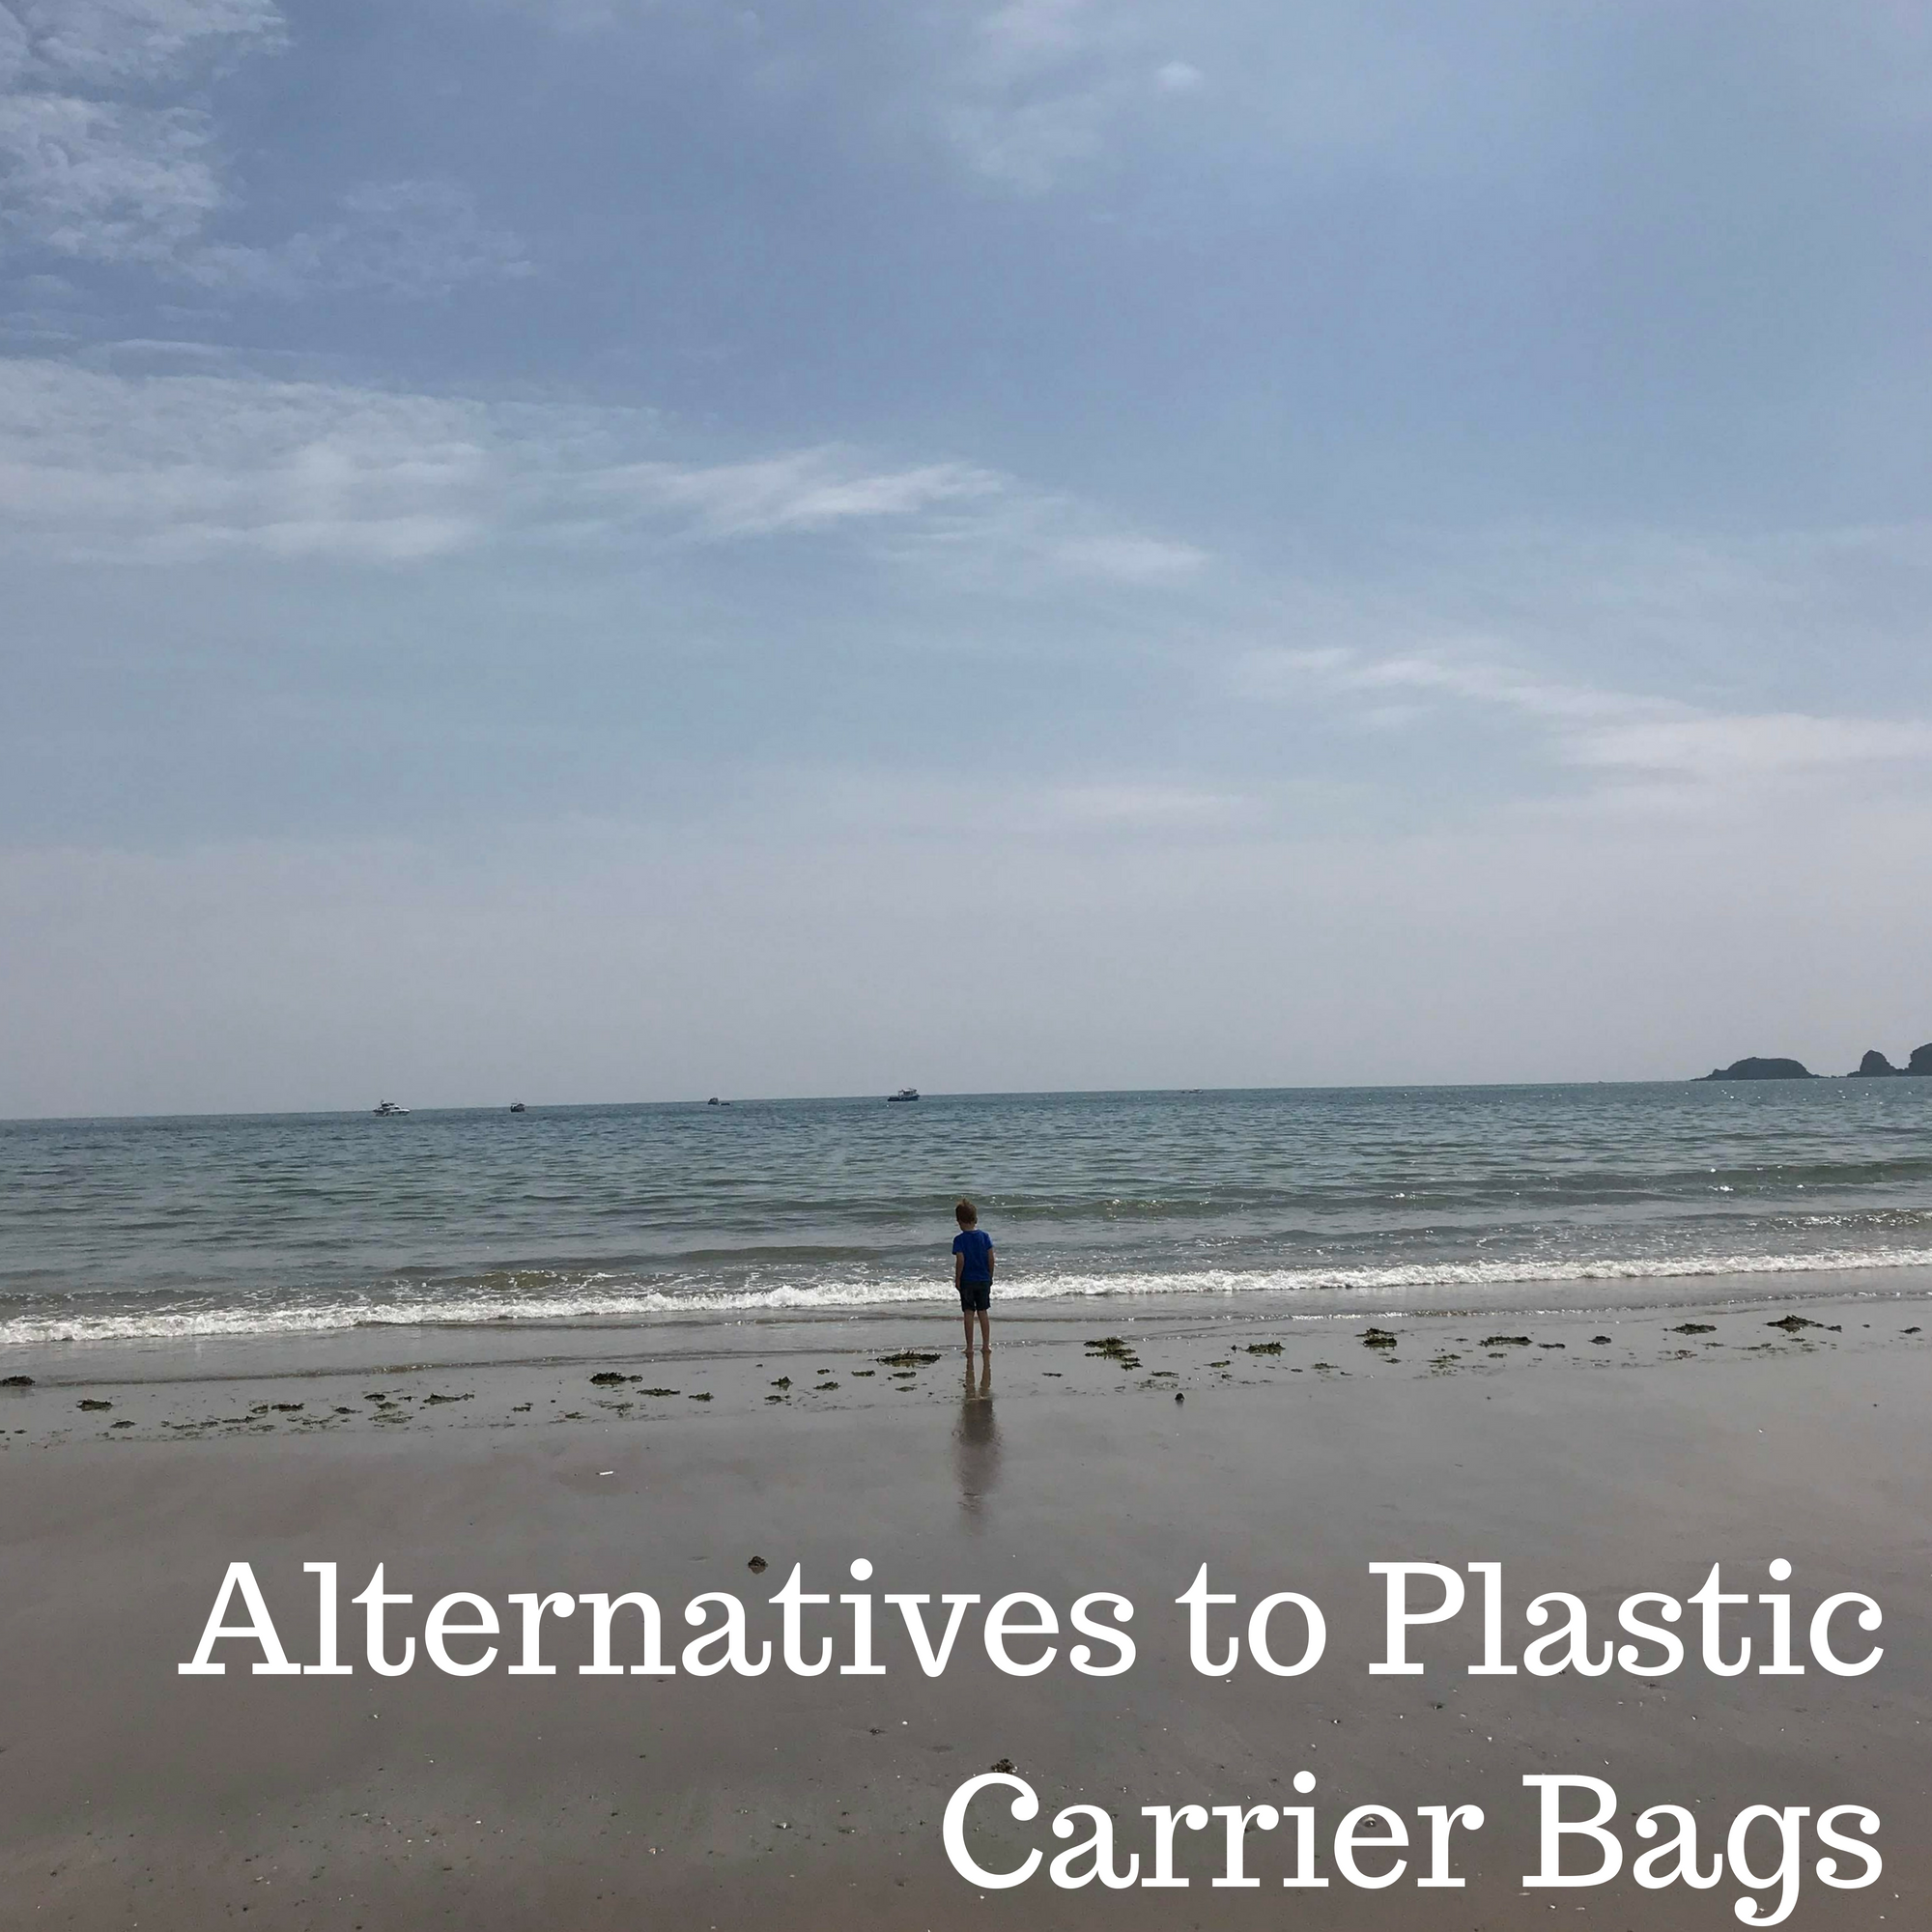 Alternatives to Plastic Carrier Bags